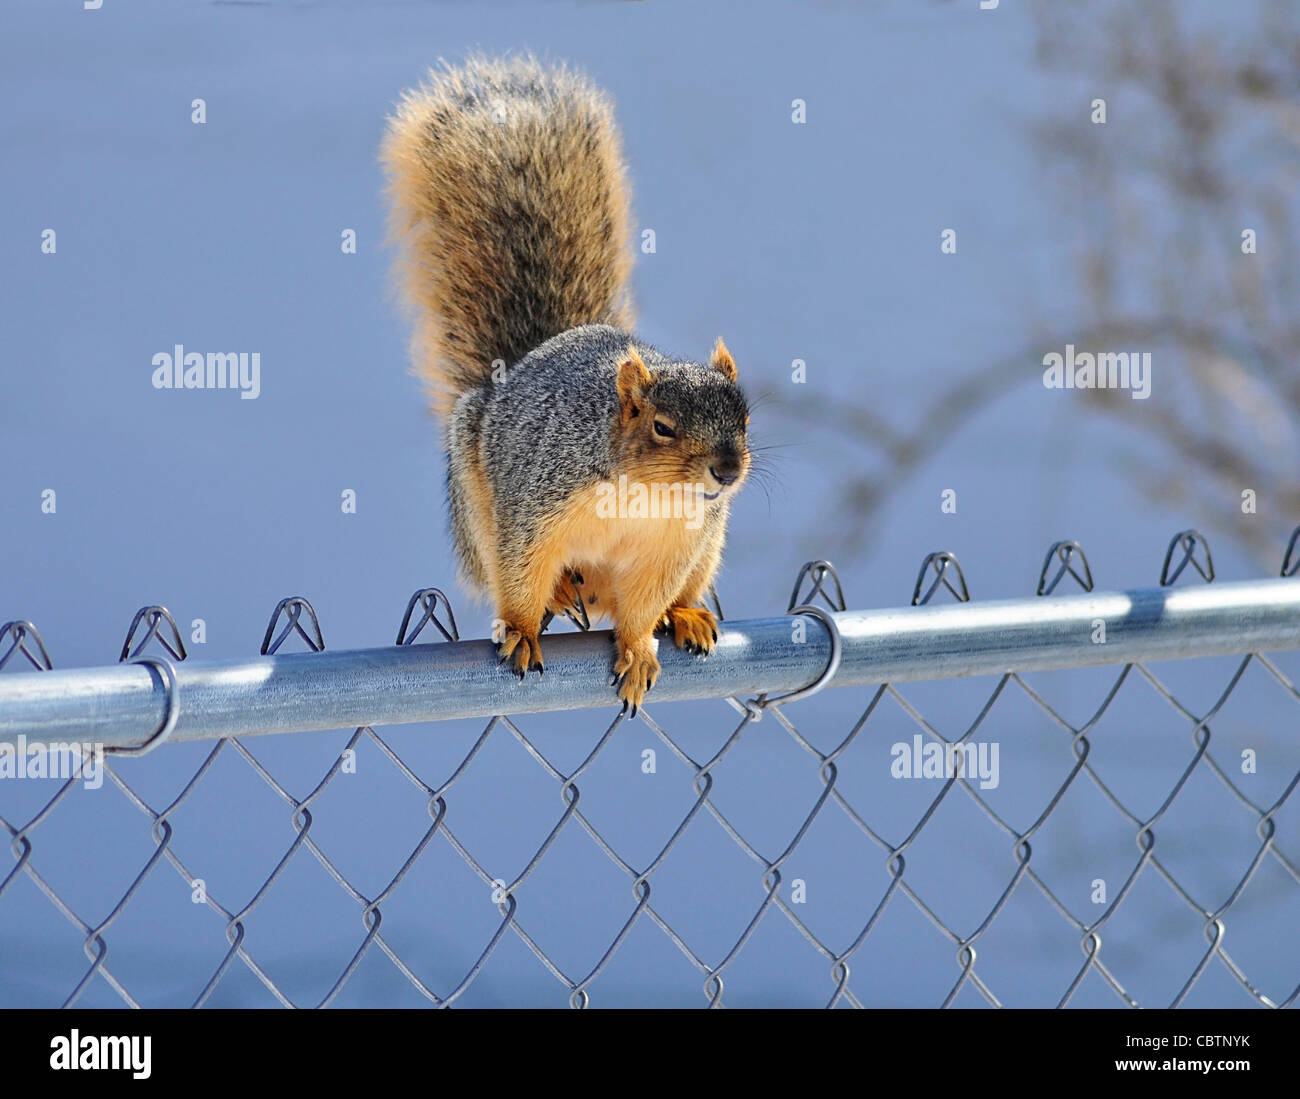 Squirrel On Fence Stock Photos & Squirrel On Fence Stock Images - Alamy